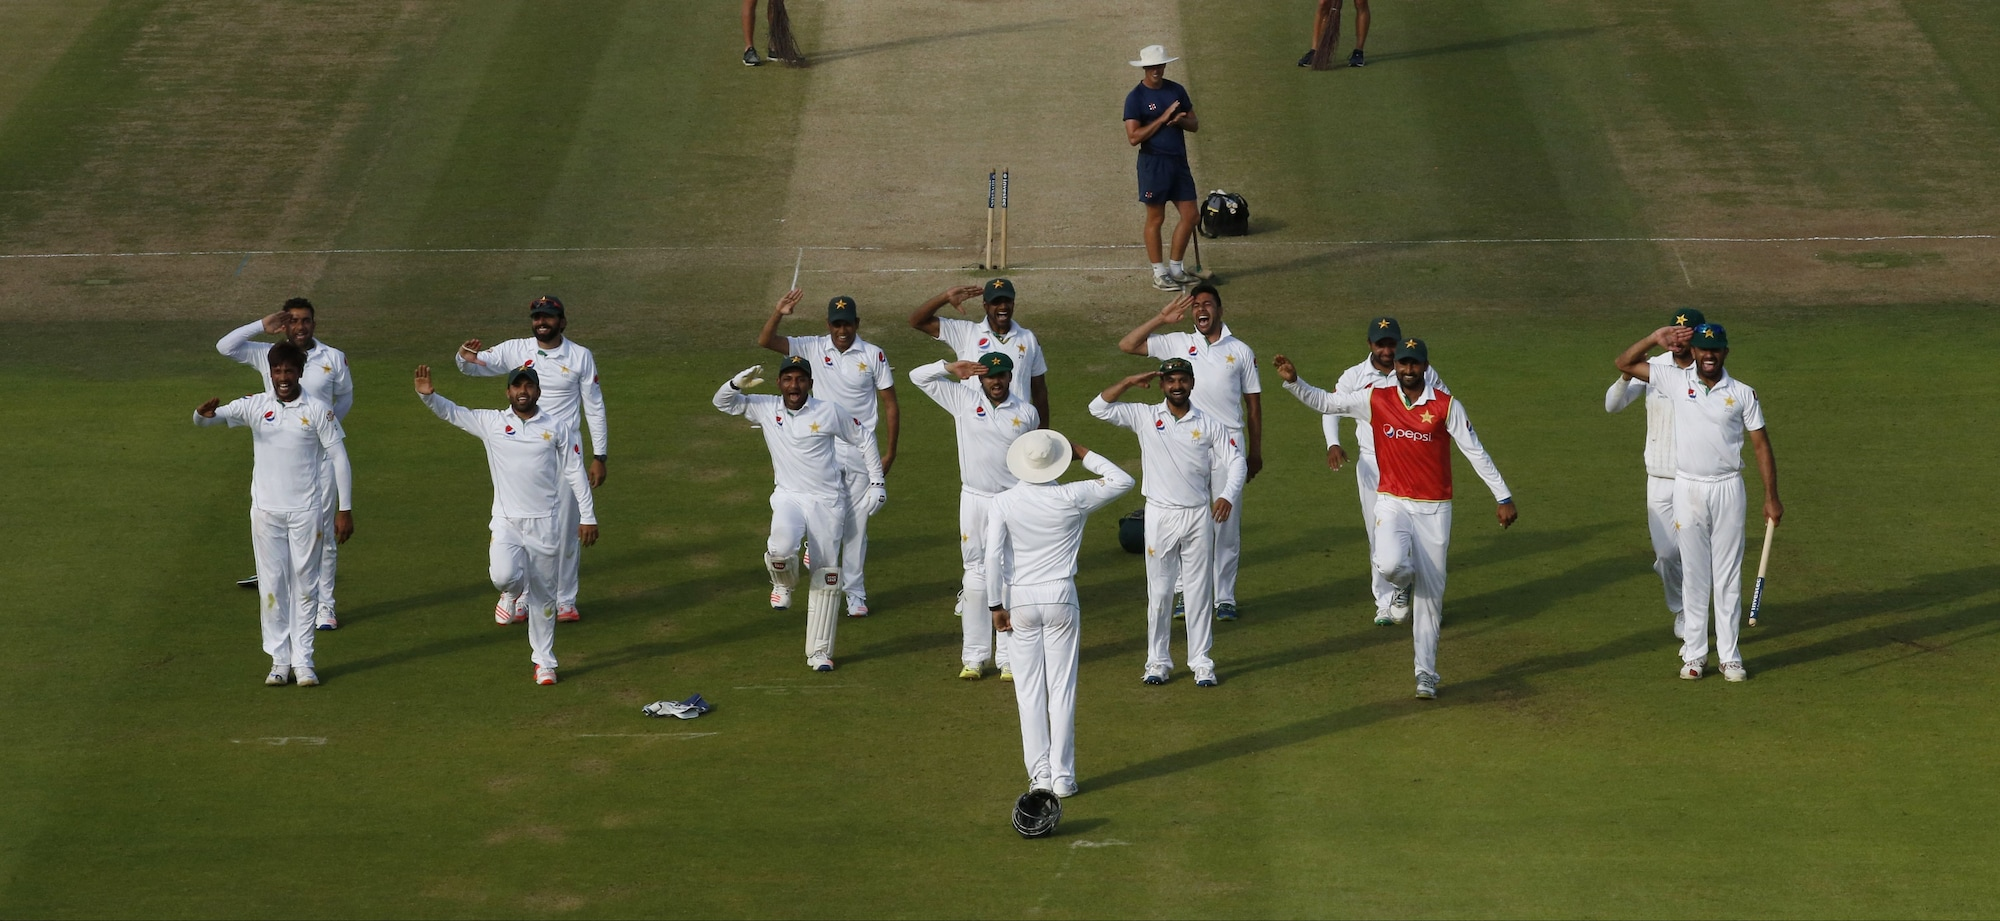 Year in Review 2016: Lord's, Chennai, Dubai, Brisbane, Dhaka saw the 5 best Tests this year